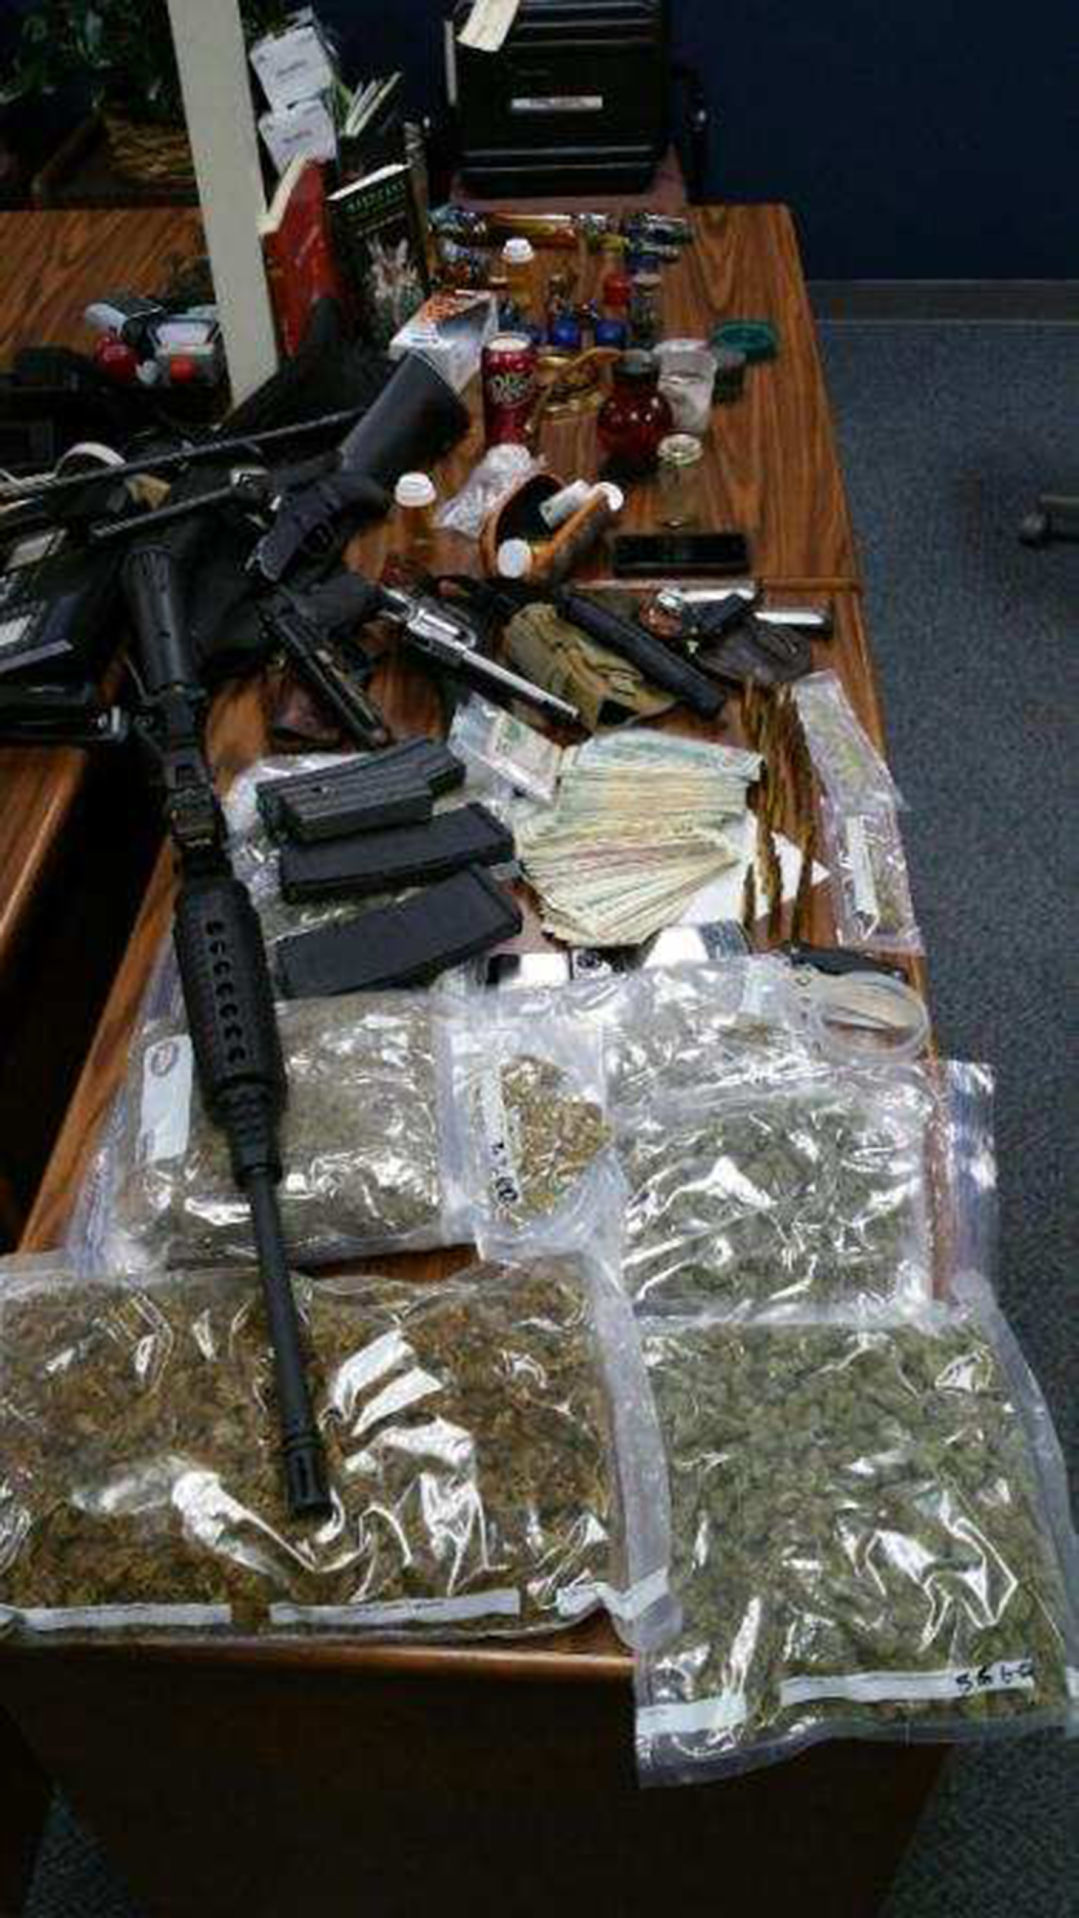 Man arrested following traffic stop for possession of